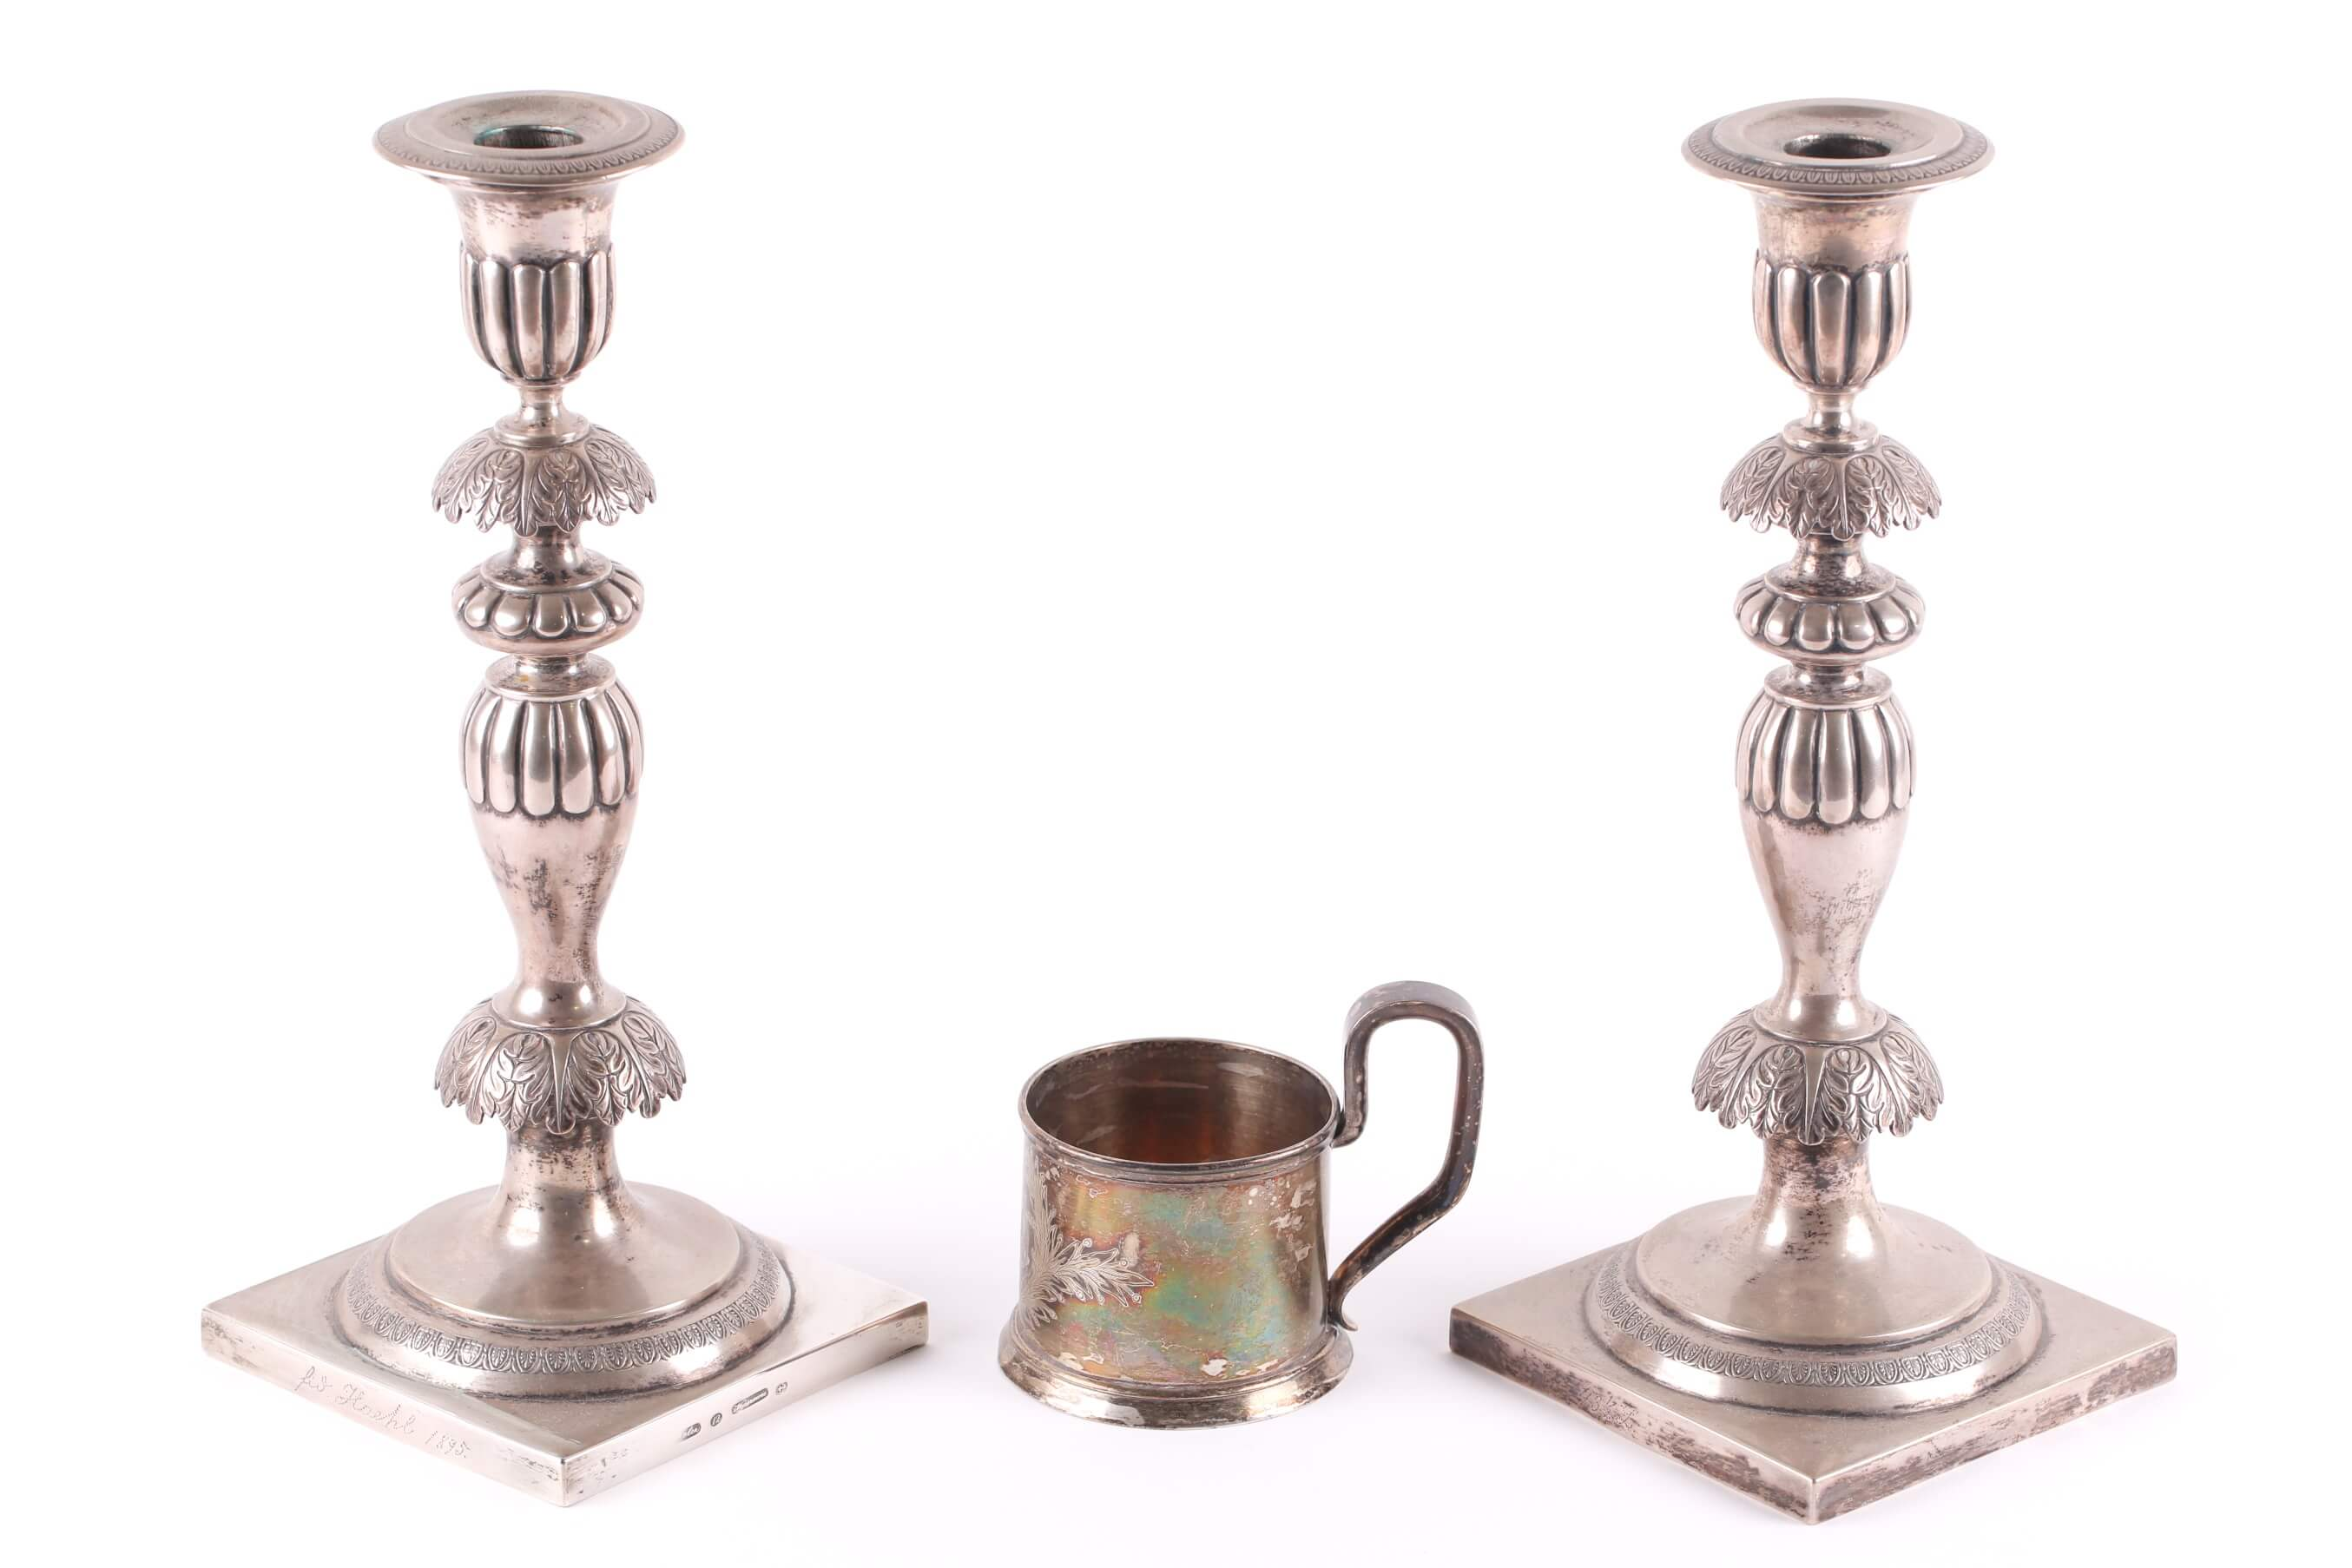 A pair of late 19th century Polish white metal table candlesticks